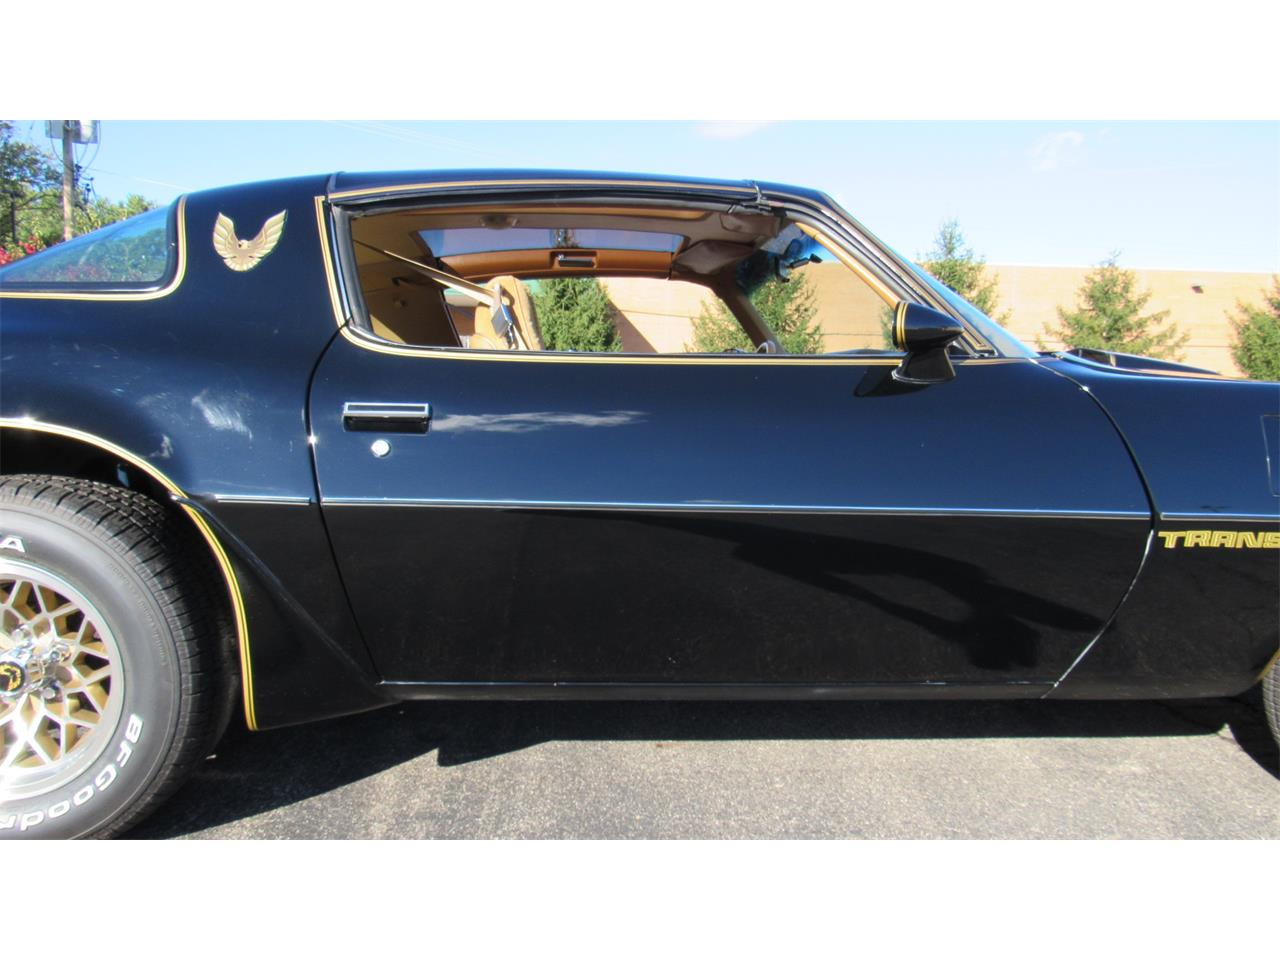 Large Picture of 1979 Pontiac Firebird Trans Am located in Ohio - $39,900.00 - M8TS